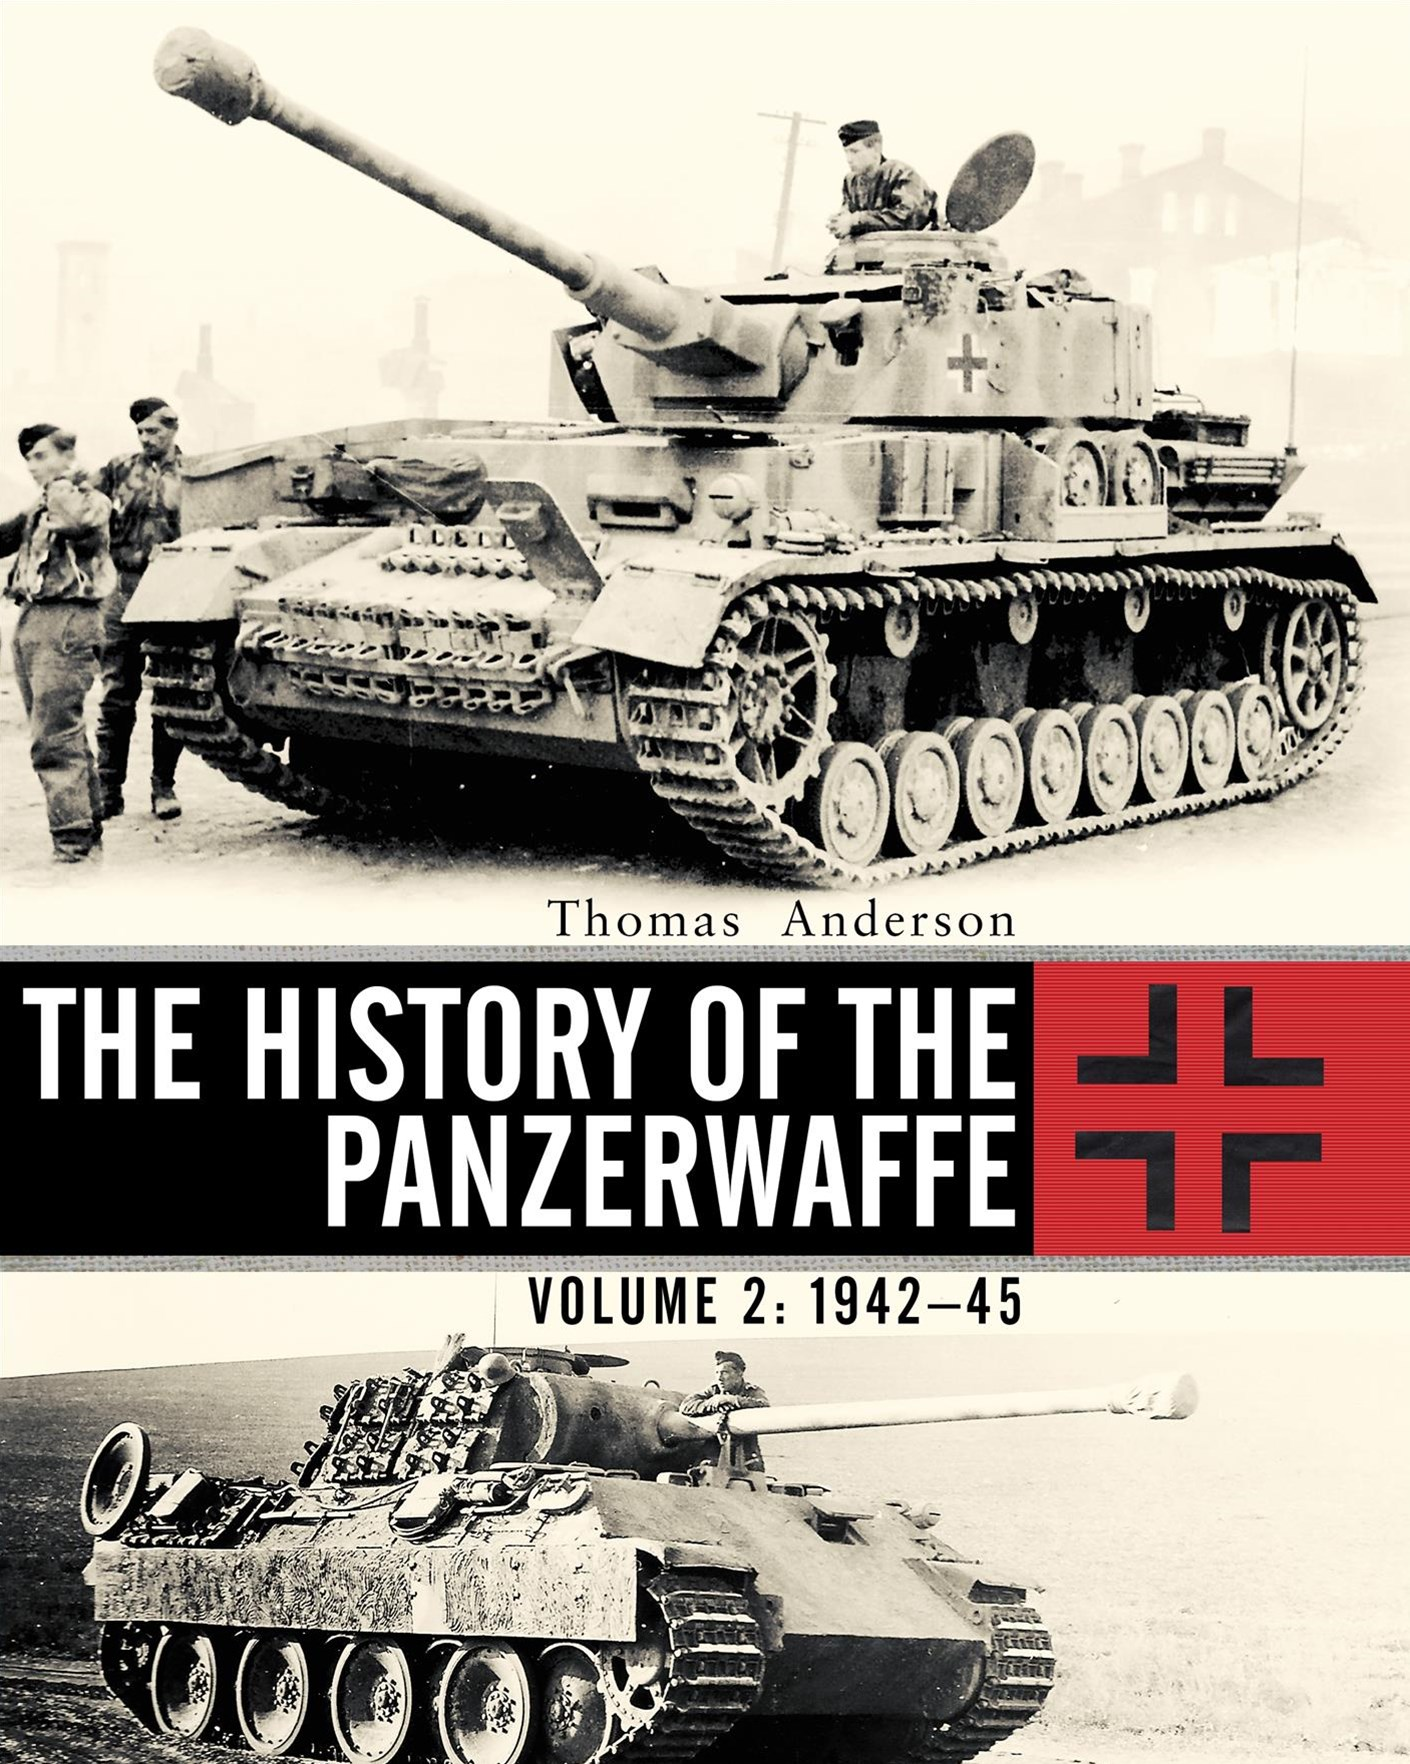 The History of the Panzerwaffe: 1943-45